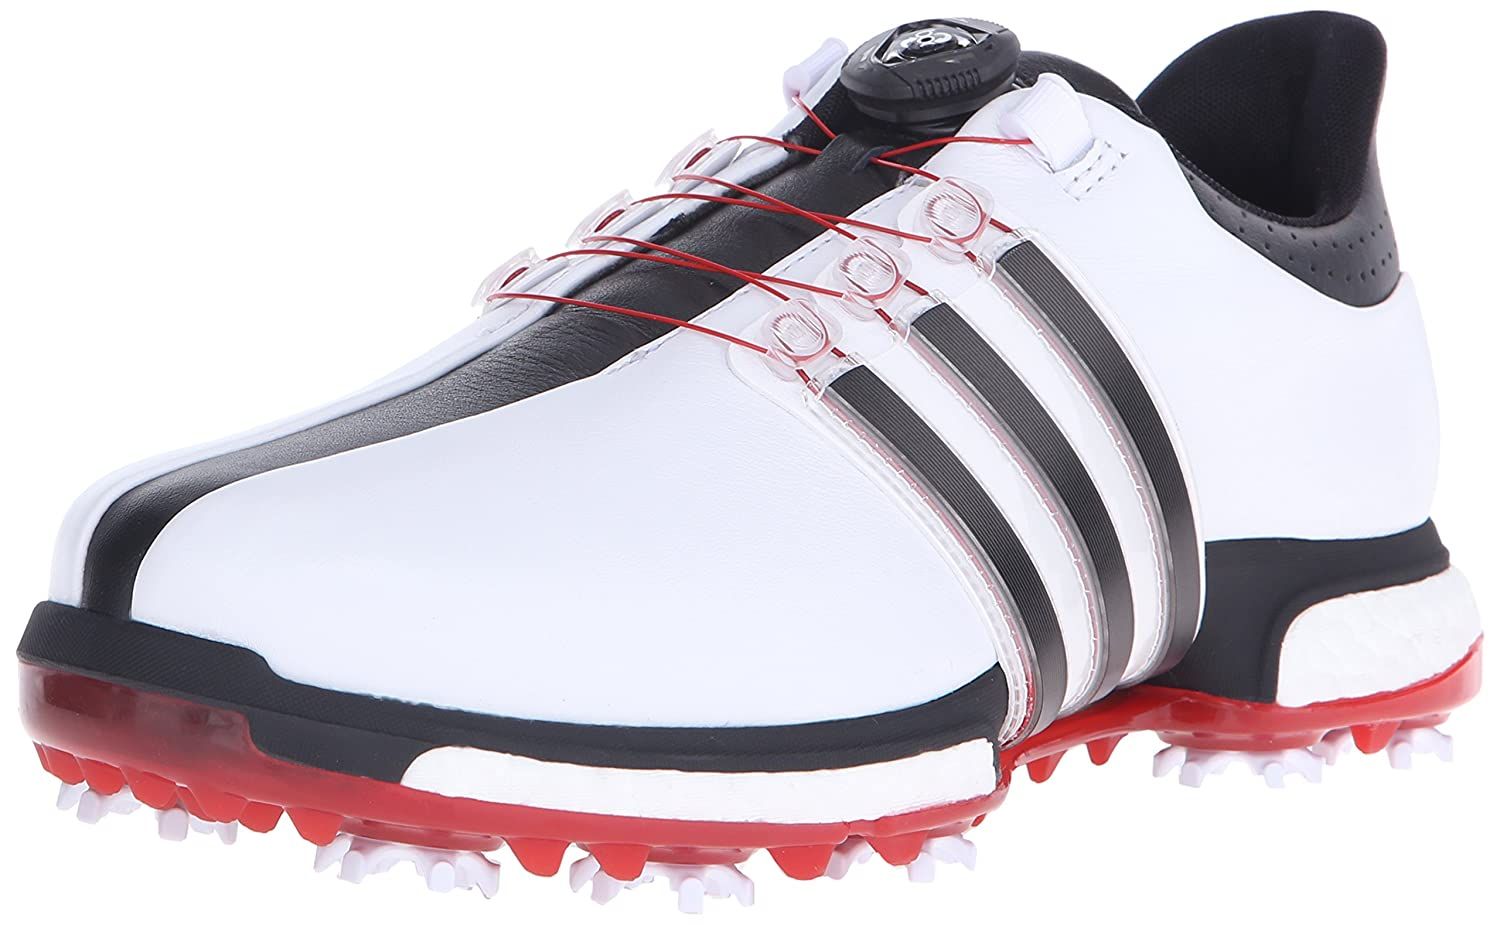 adidas Golf Men's Tour360 Boa Boost Spiked Shoe B013US7F9W 11.5 D(M) US|Ftwr White/Core Black/Power Red